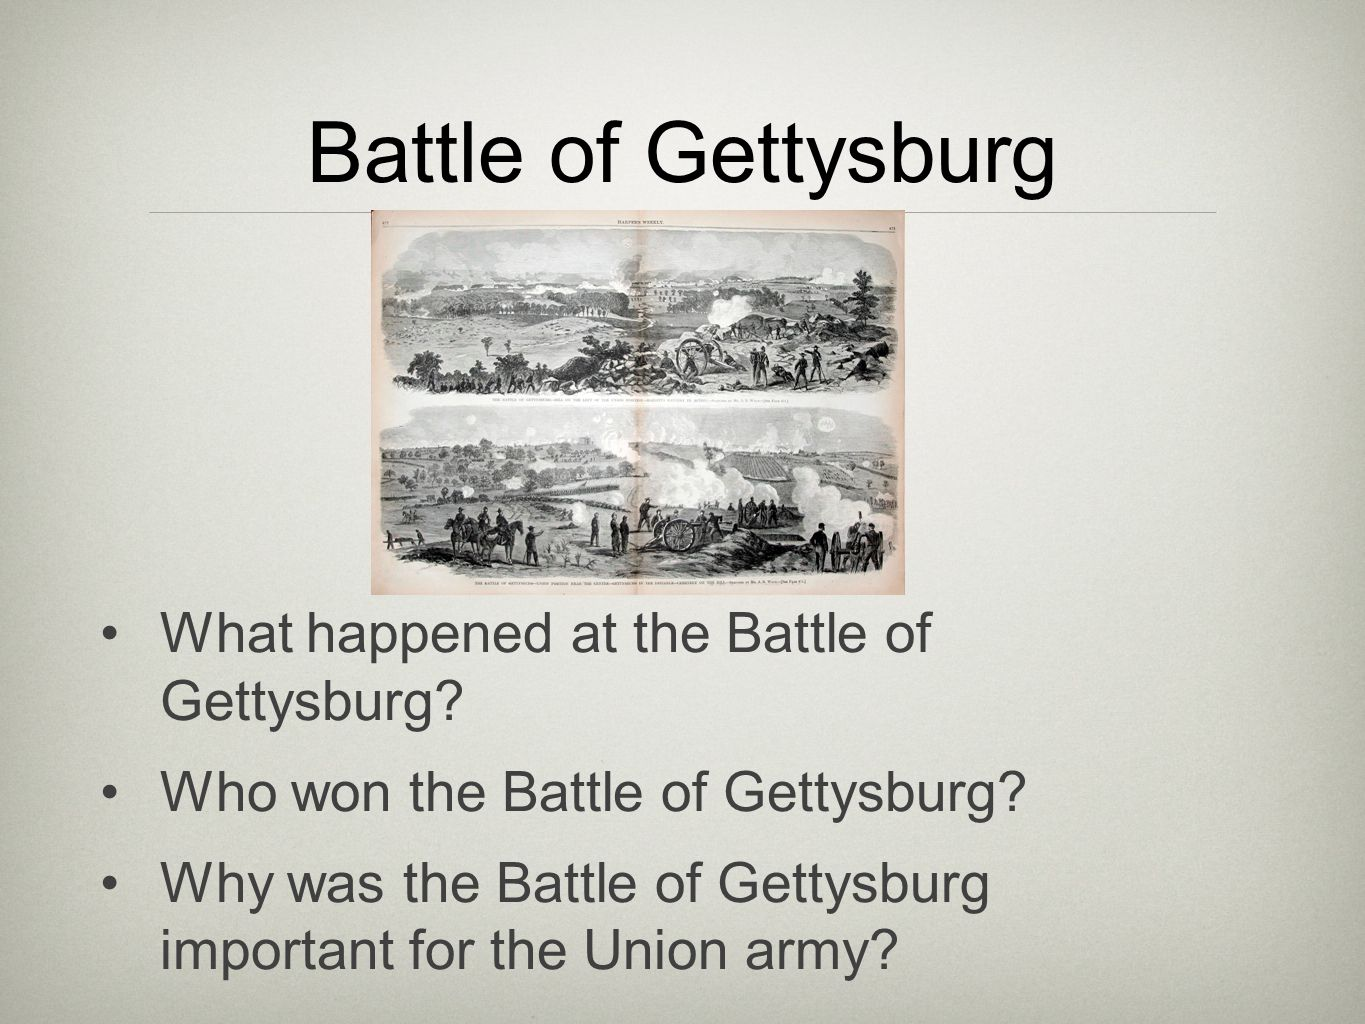 Battle of Gettysburg What happened at the Battle of Gettysburg